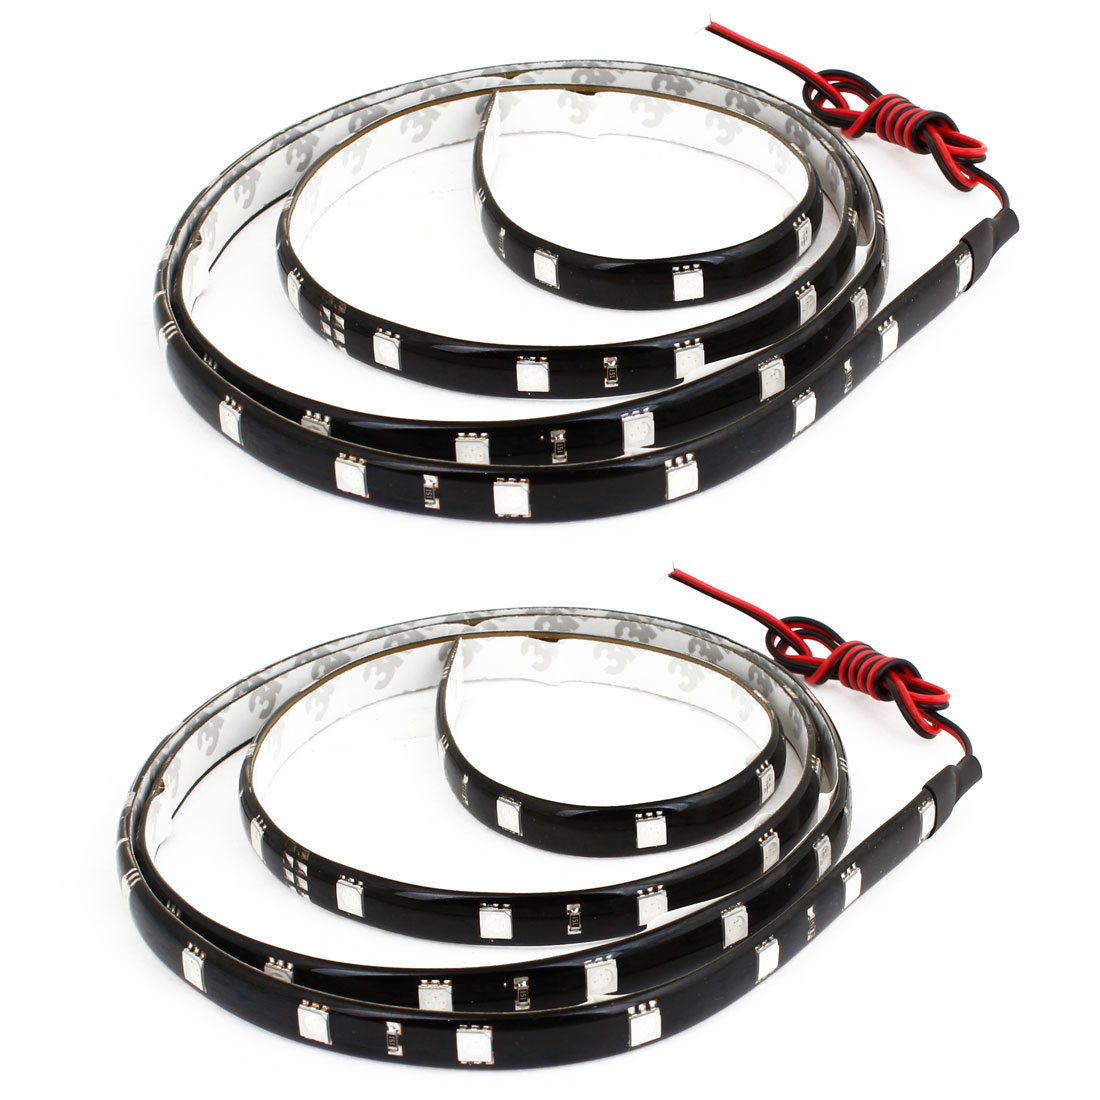 2 Pcs Blue 5050 SMD 48 LED Flexible Lamp Light Strip 120cm for Car Decorative